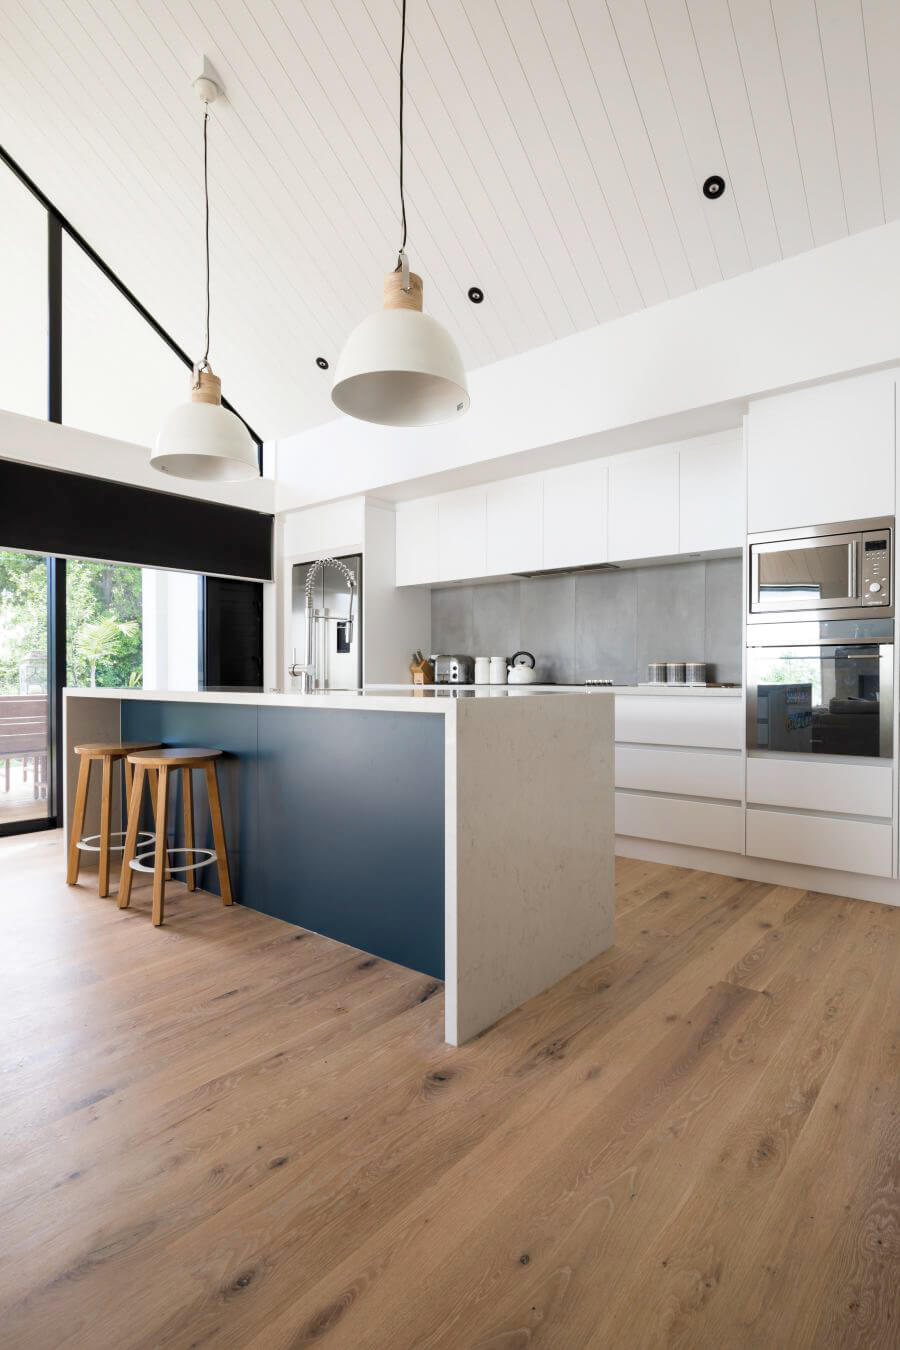 Modern and bright kitchen with american oak hardwood flooring.